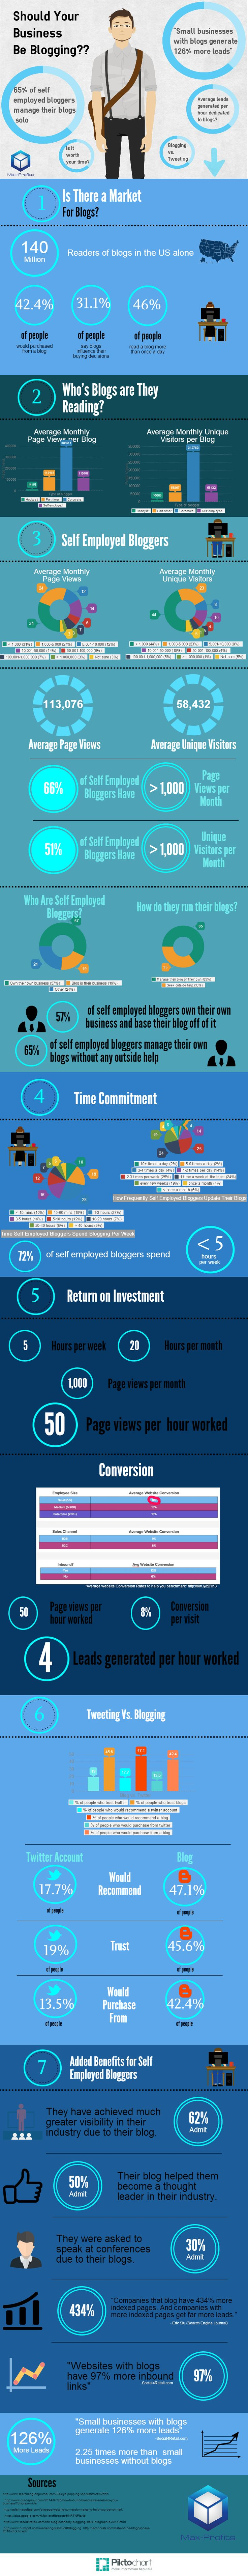 Infographic: Should Your Business Be Blogging?